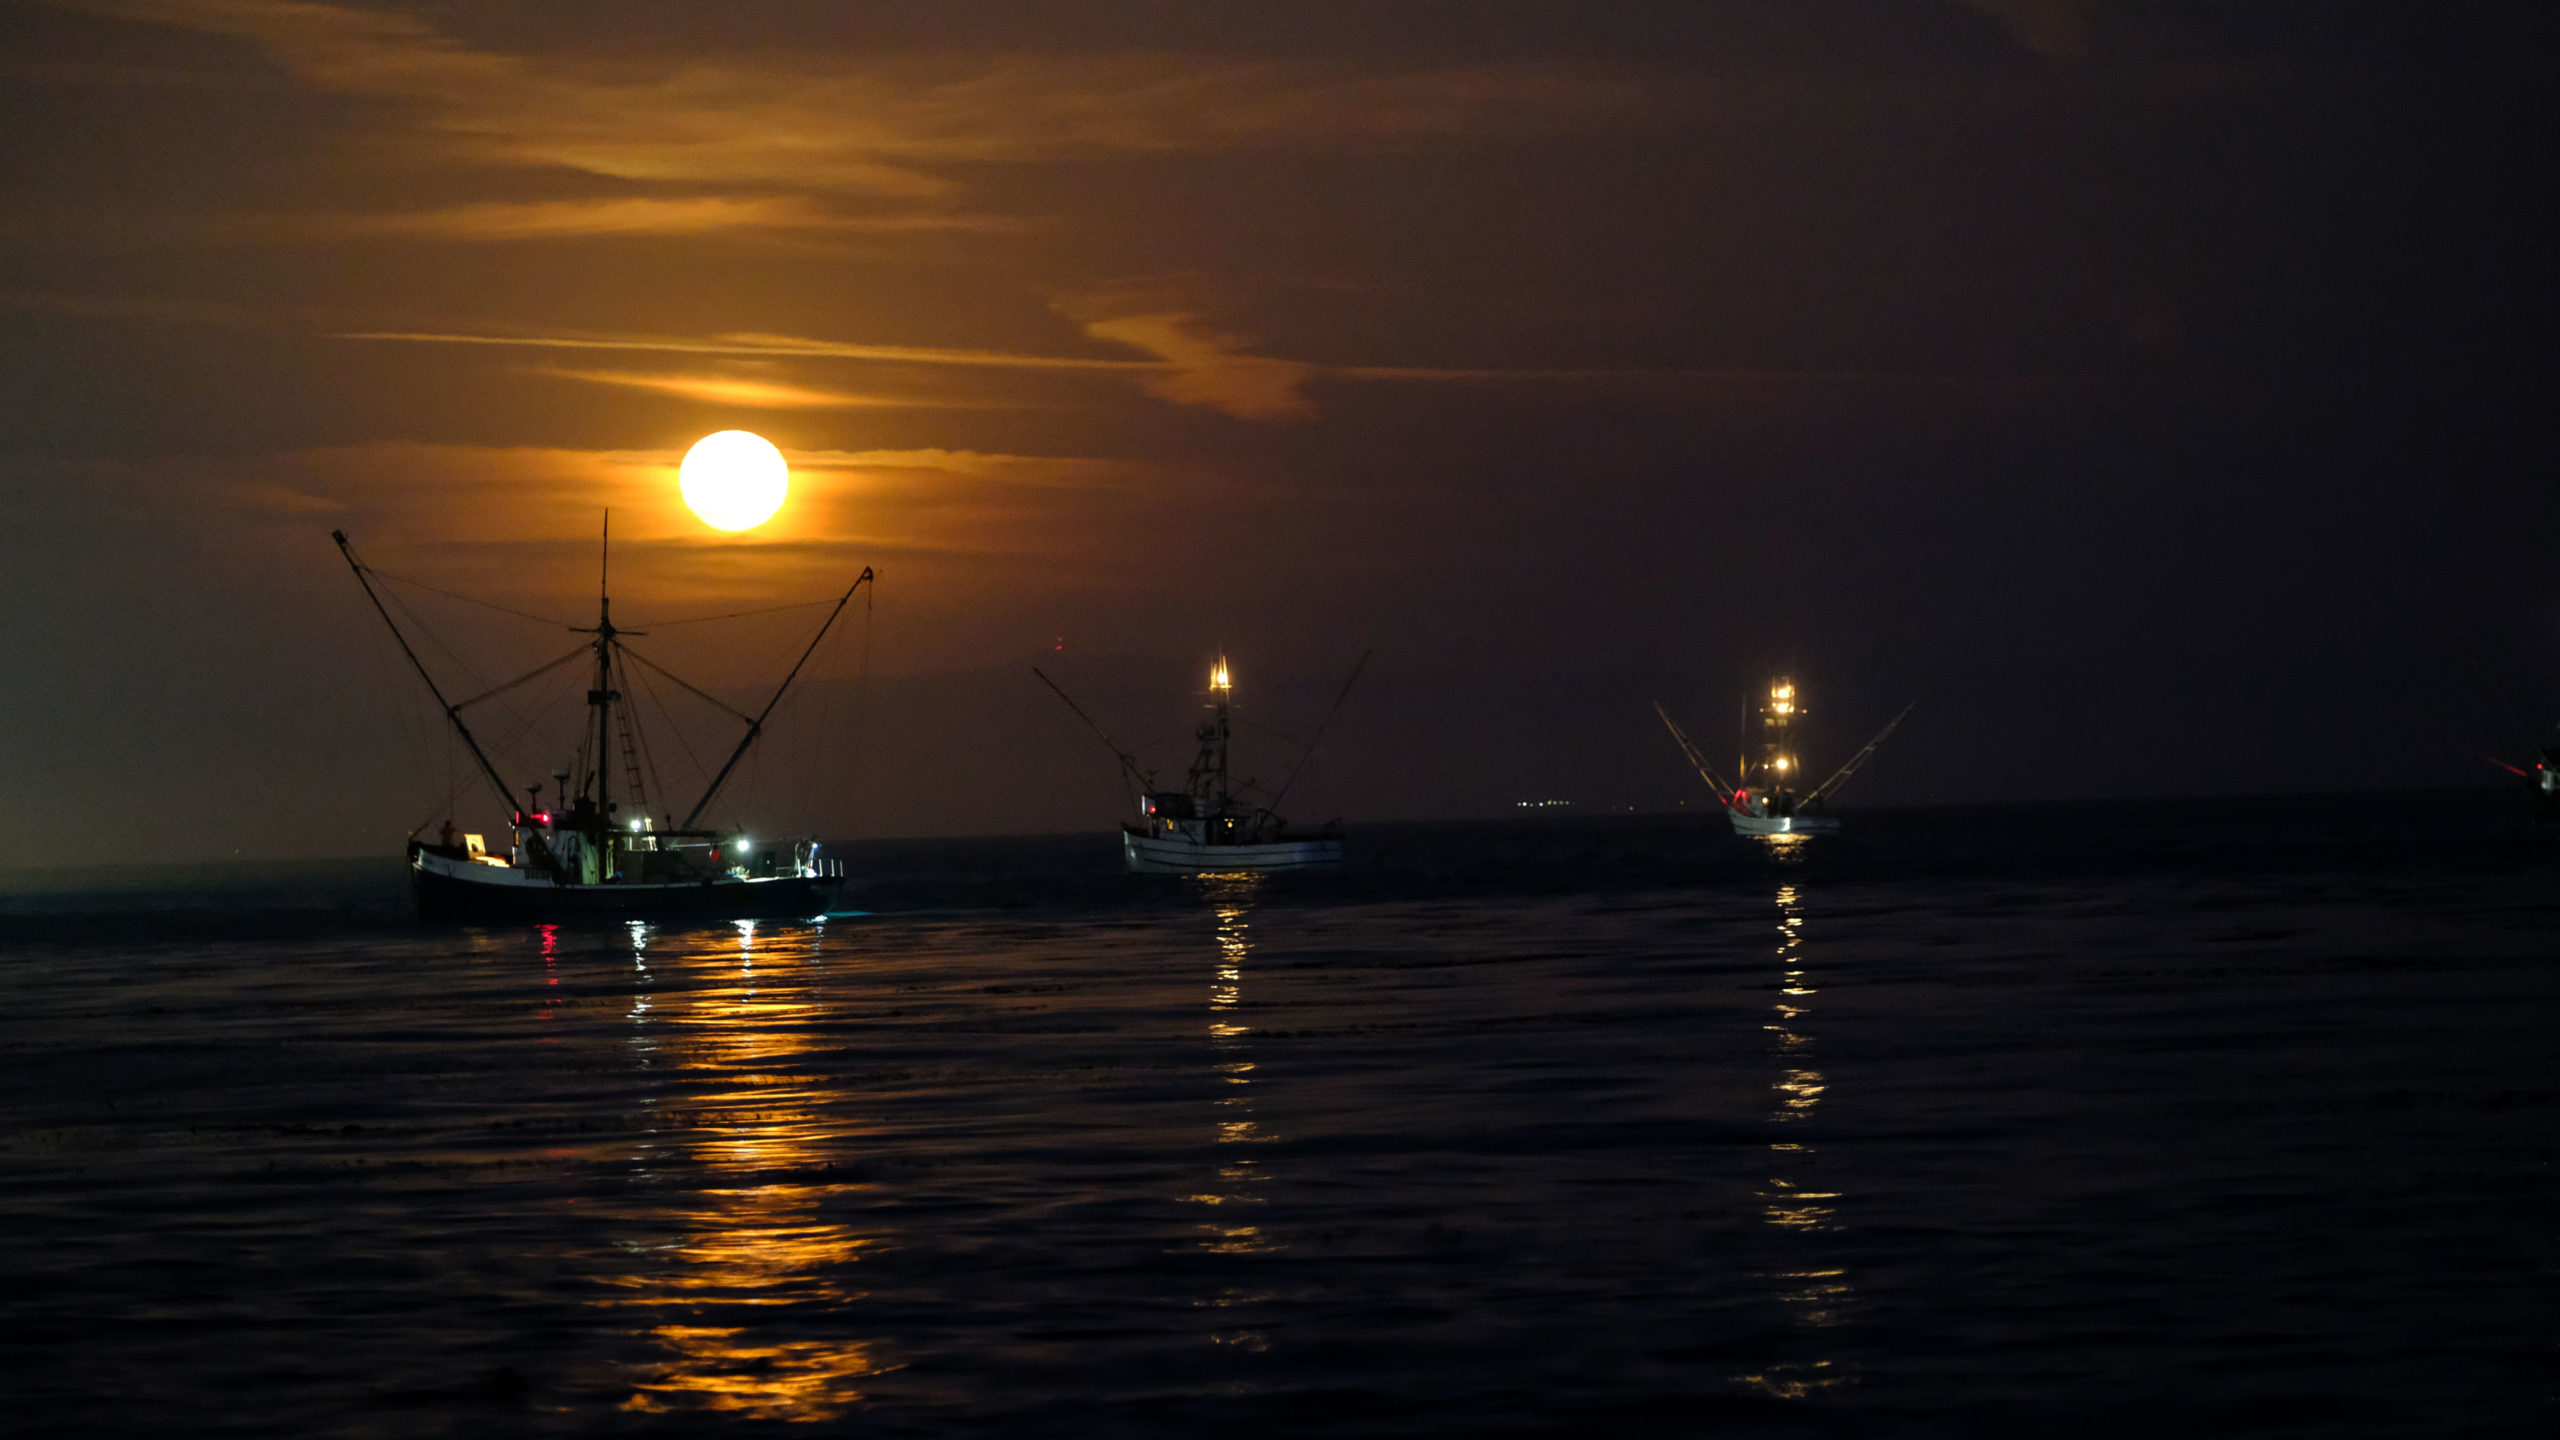 Three fishing boats in the ocean with a bright full moon behind them.